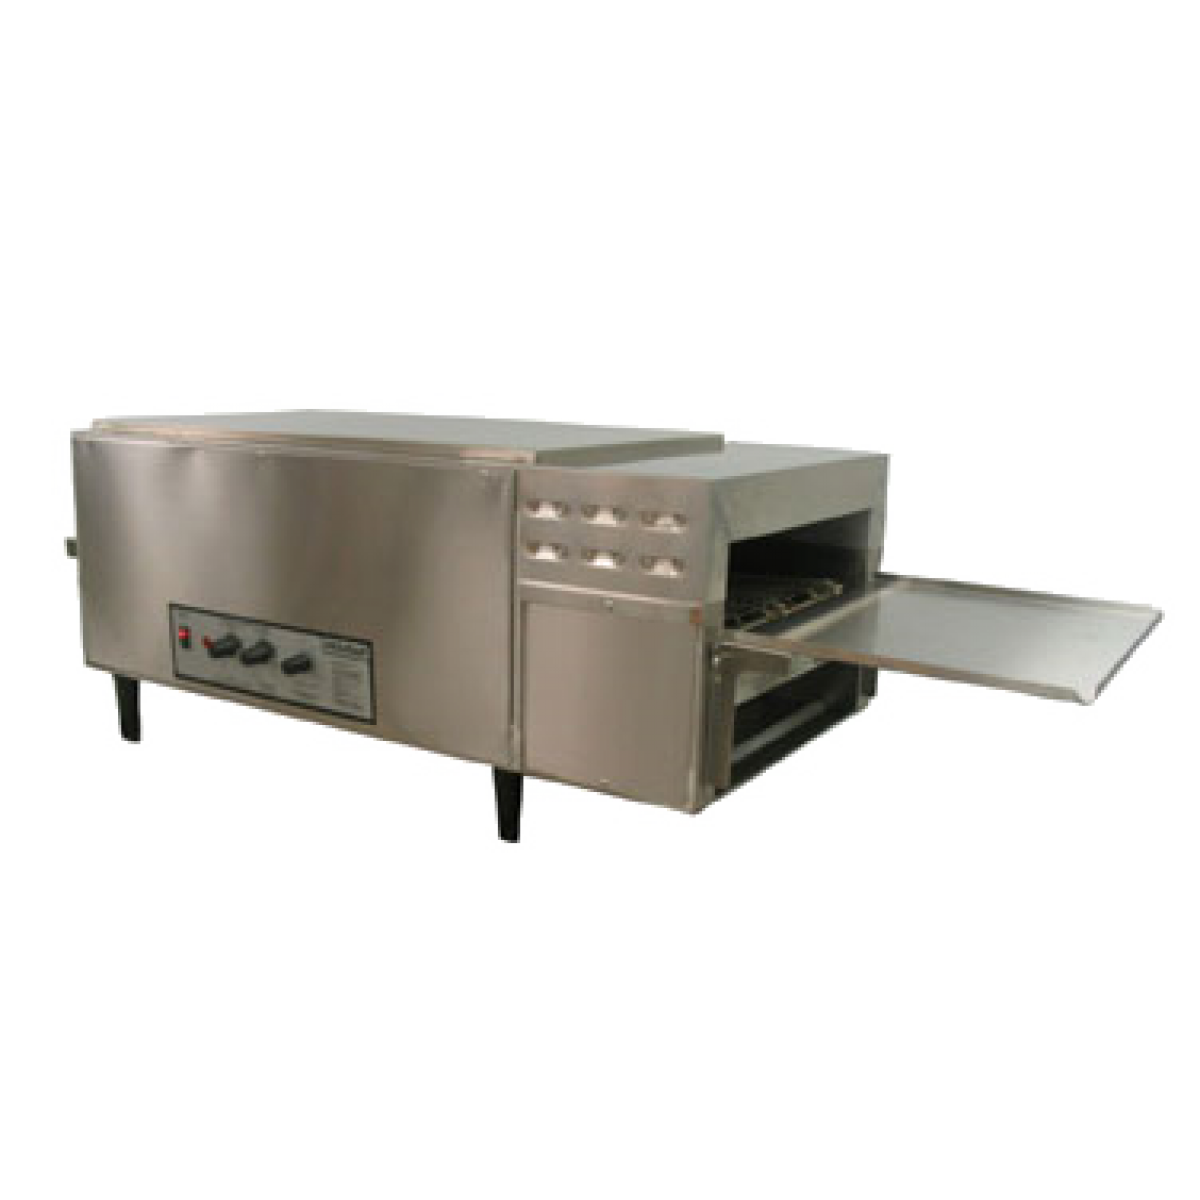 CounterTop Conveyer Oven